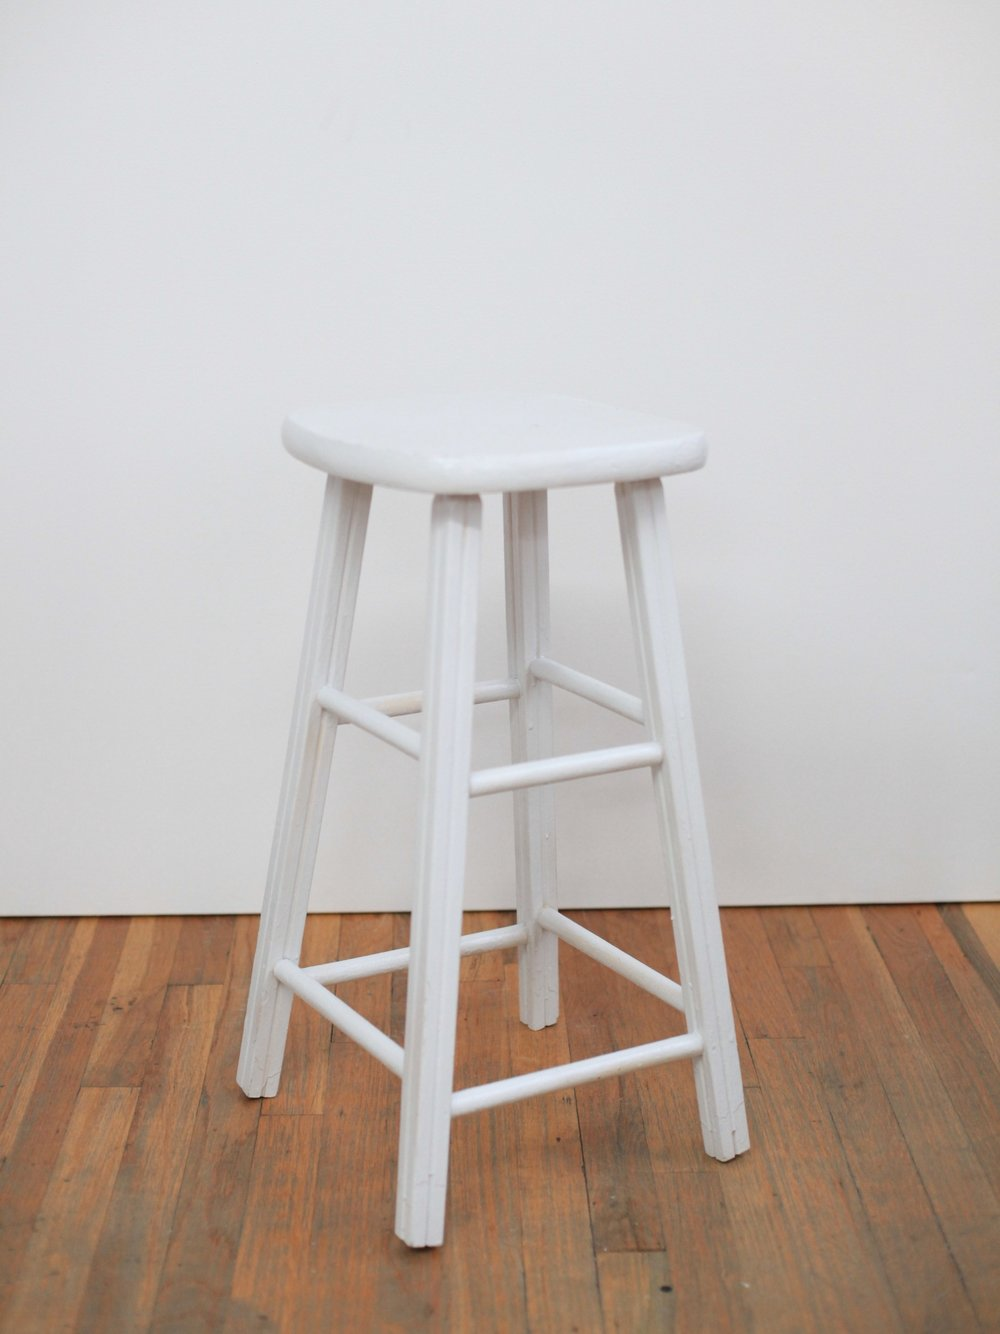 "ST002  WHITE PAINTED WOOD 12"" DIA x 25"" H  $60/week"